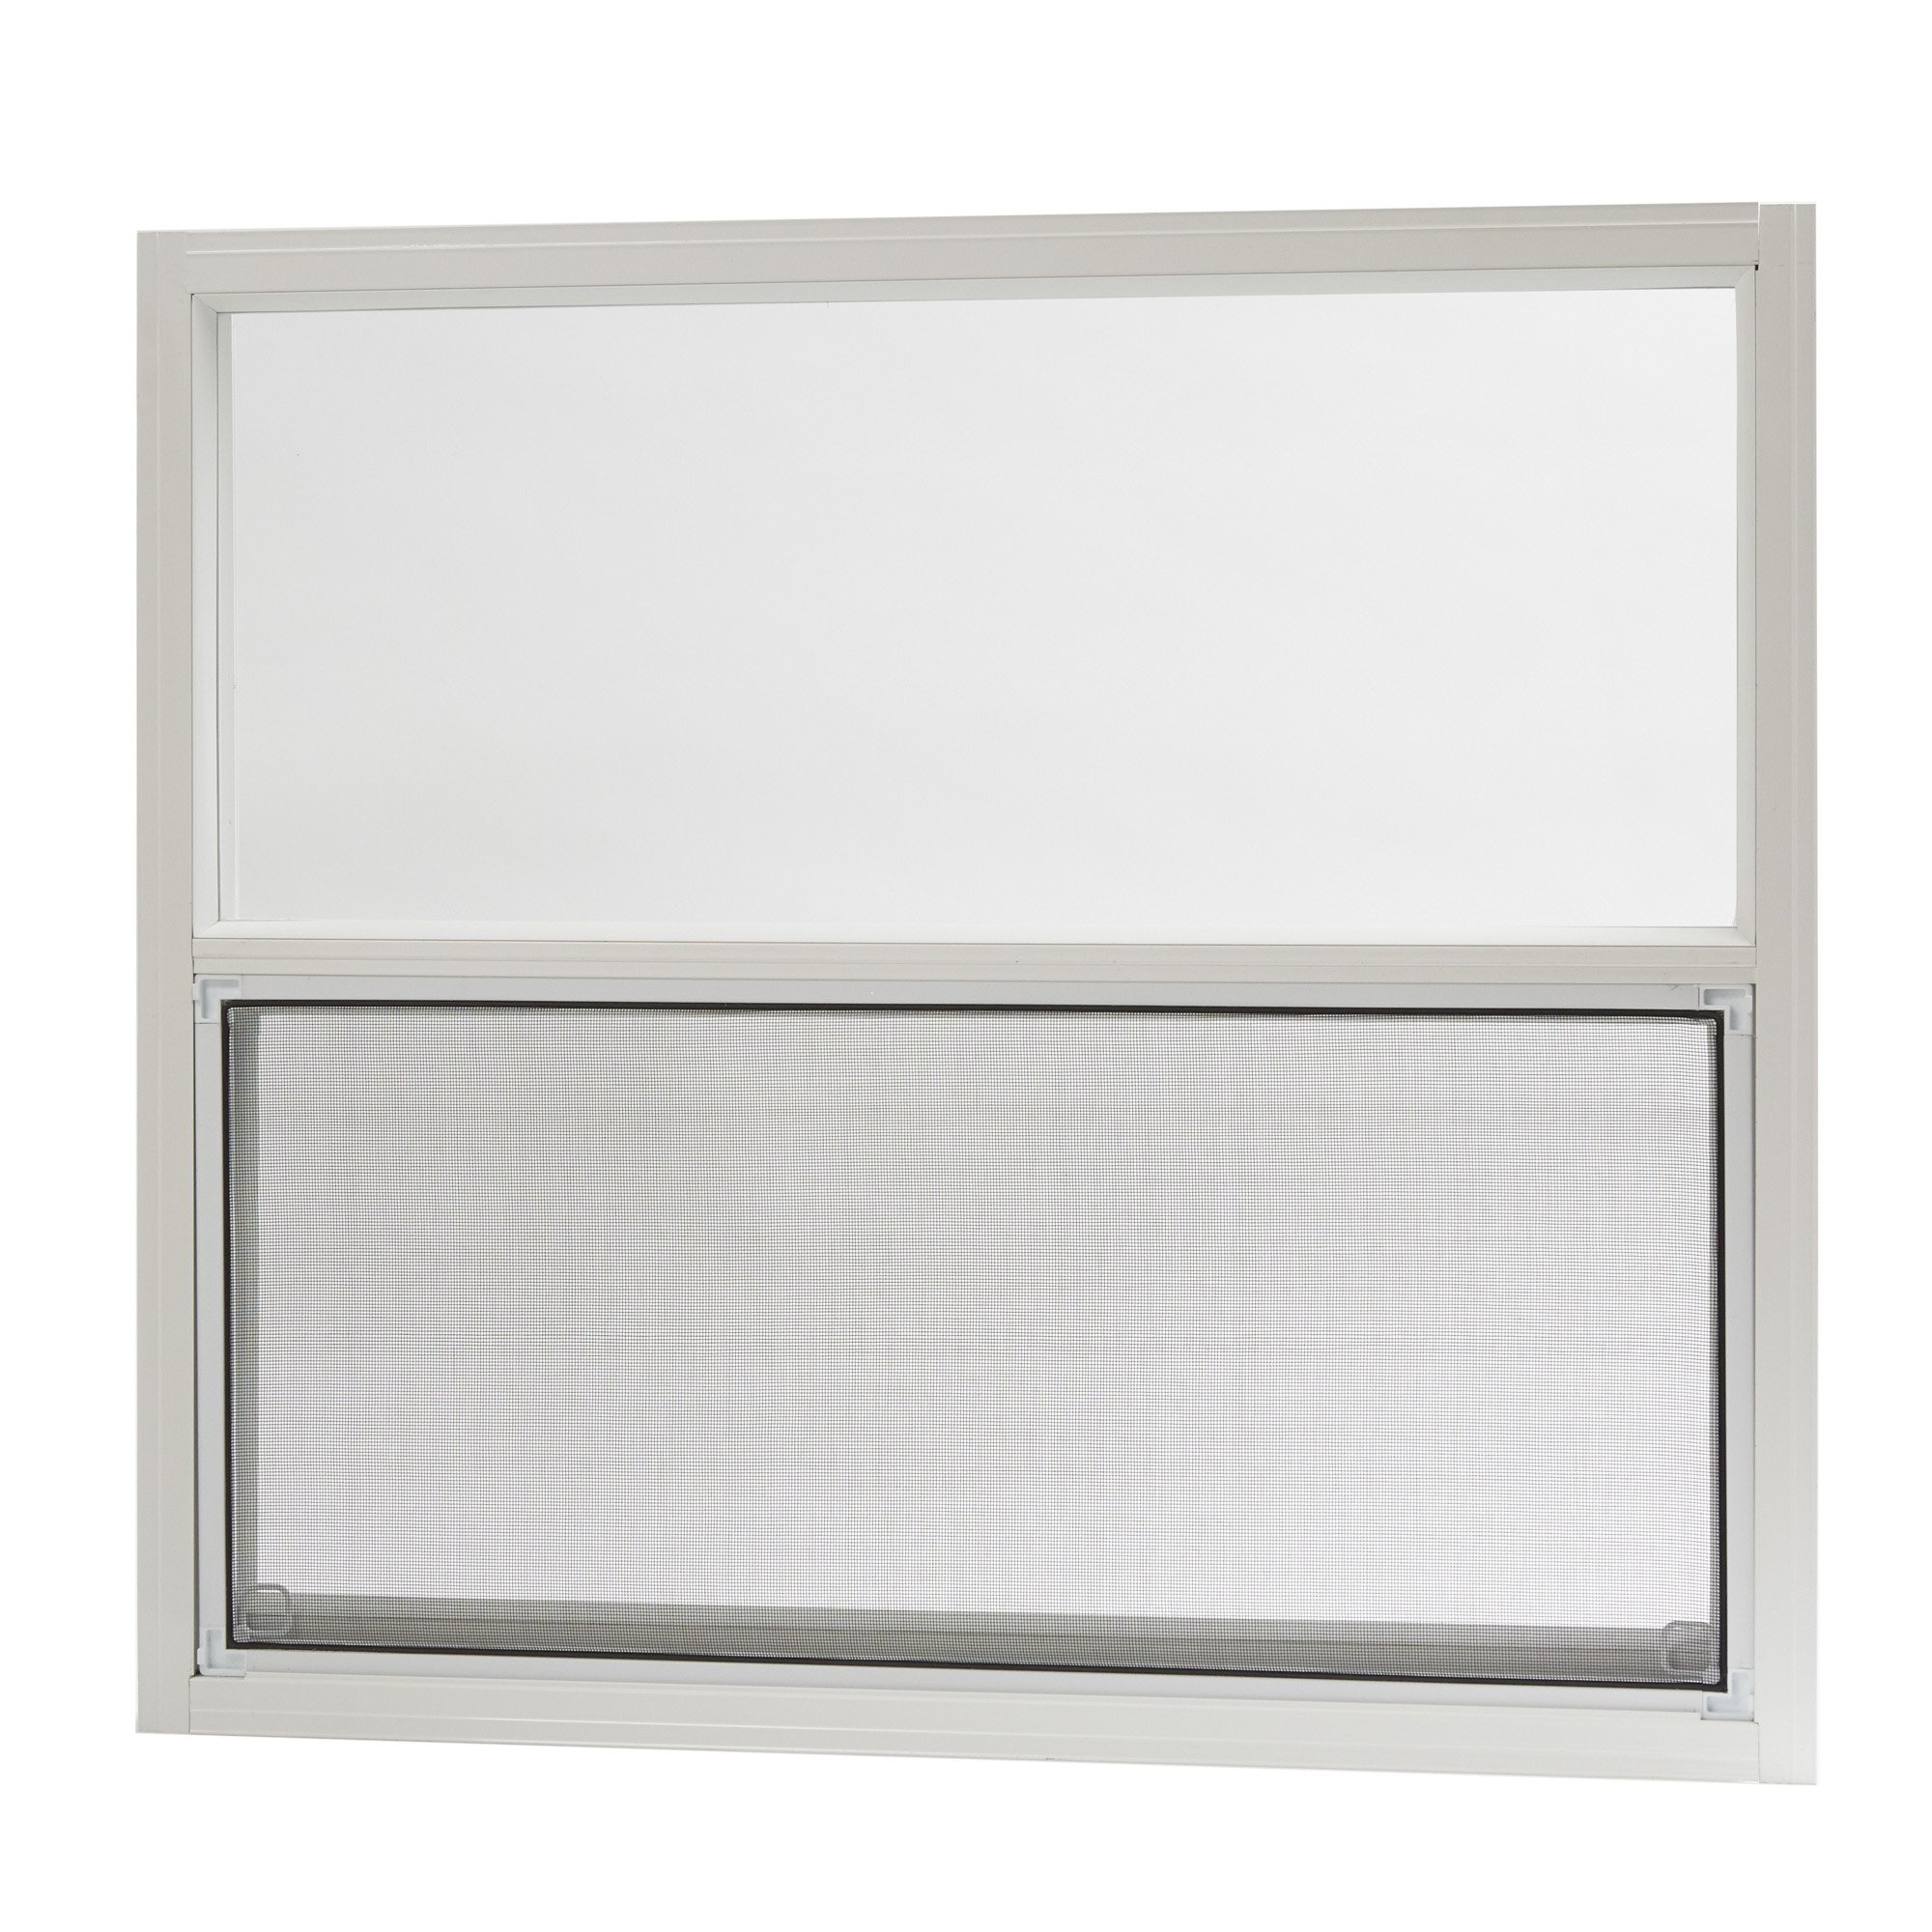 Park Ridge AMHW3027PR Aluminum Mobile Home Single Hung Window 30 Inch x 27 Inch, White